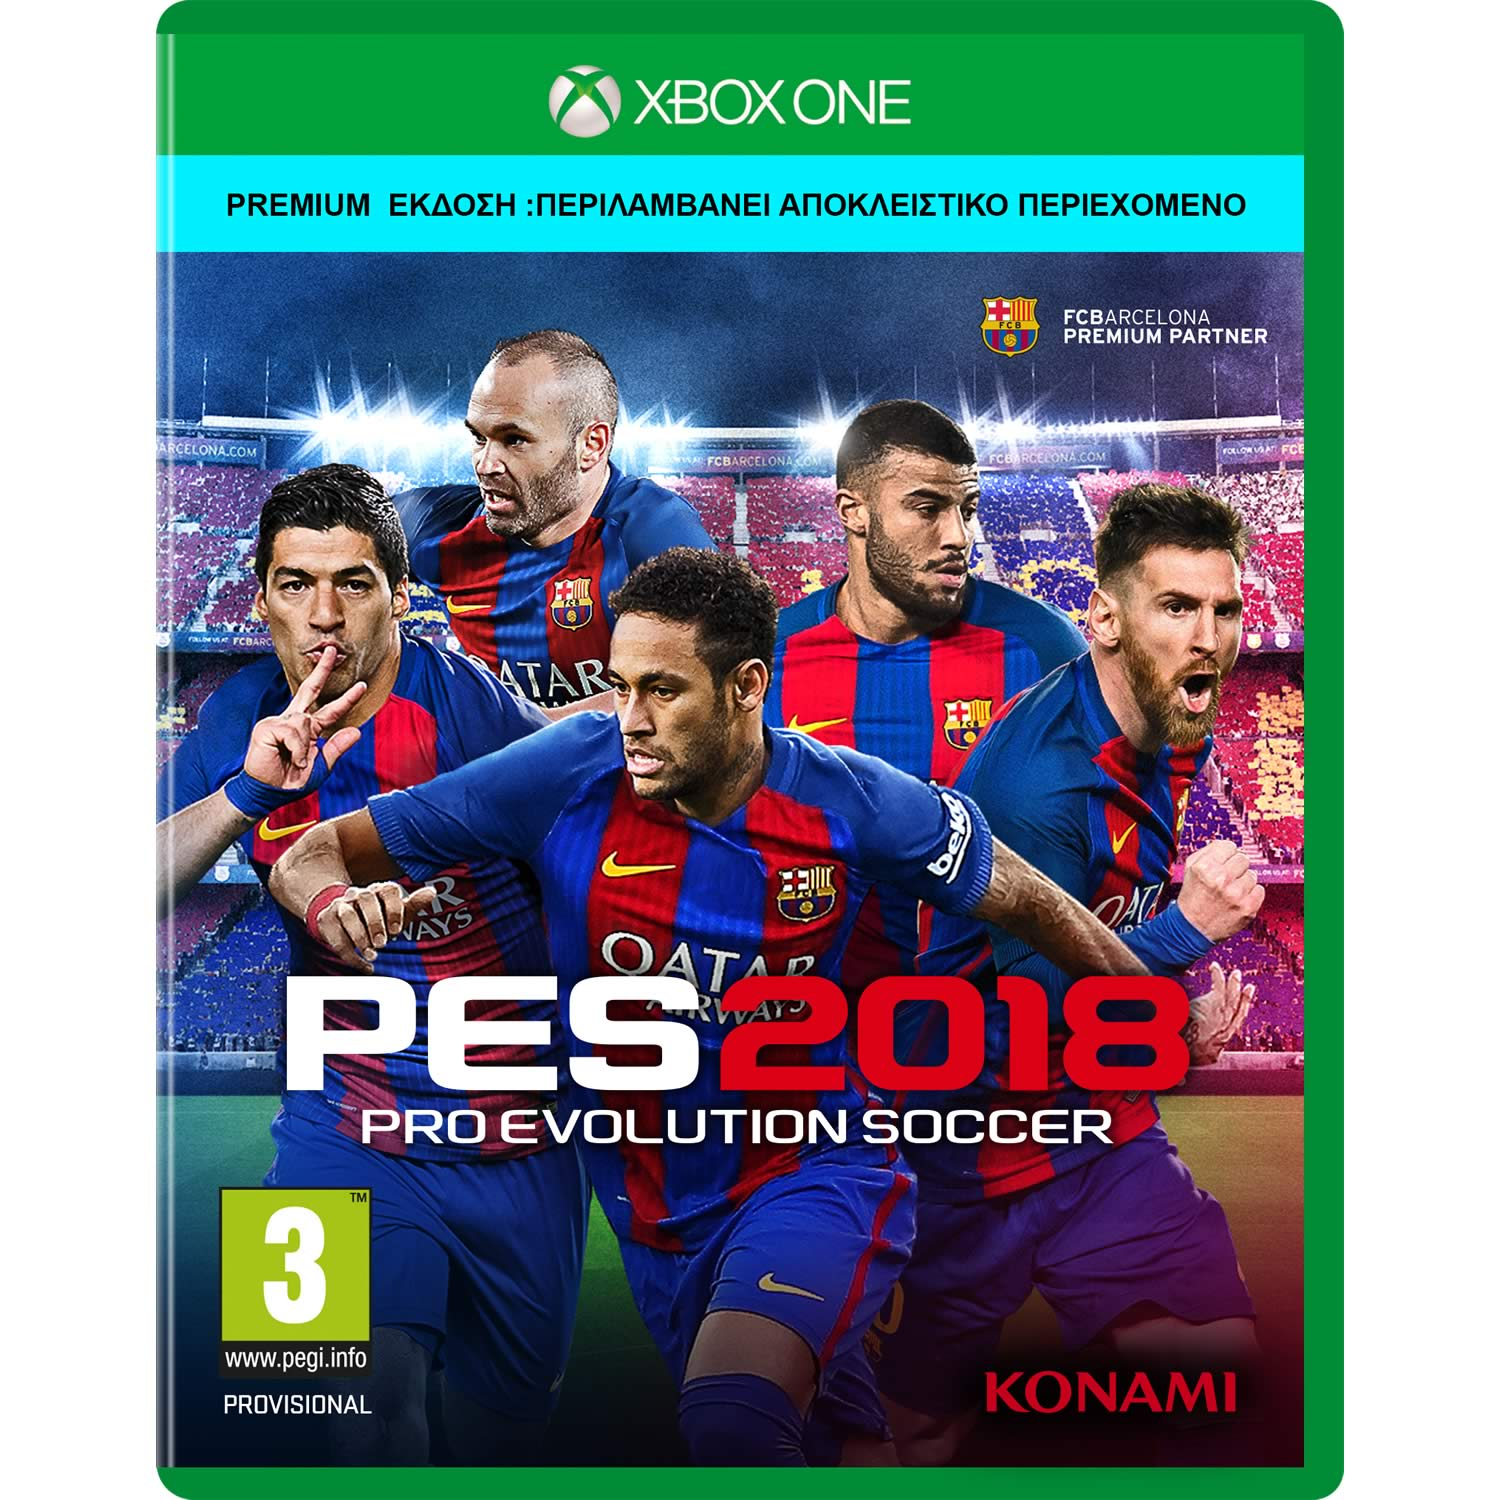 PRO EVOLUTION SOCCER 2018 [ΕΛΛΗΝΙΚΟ] - DAY 1 EDITION (XBOX ONE)